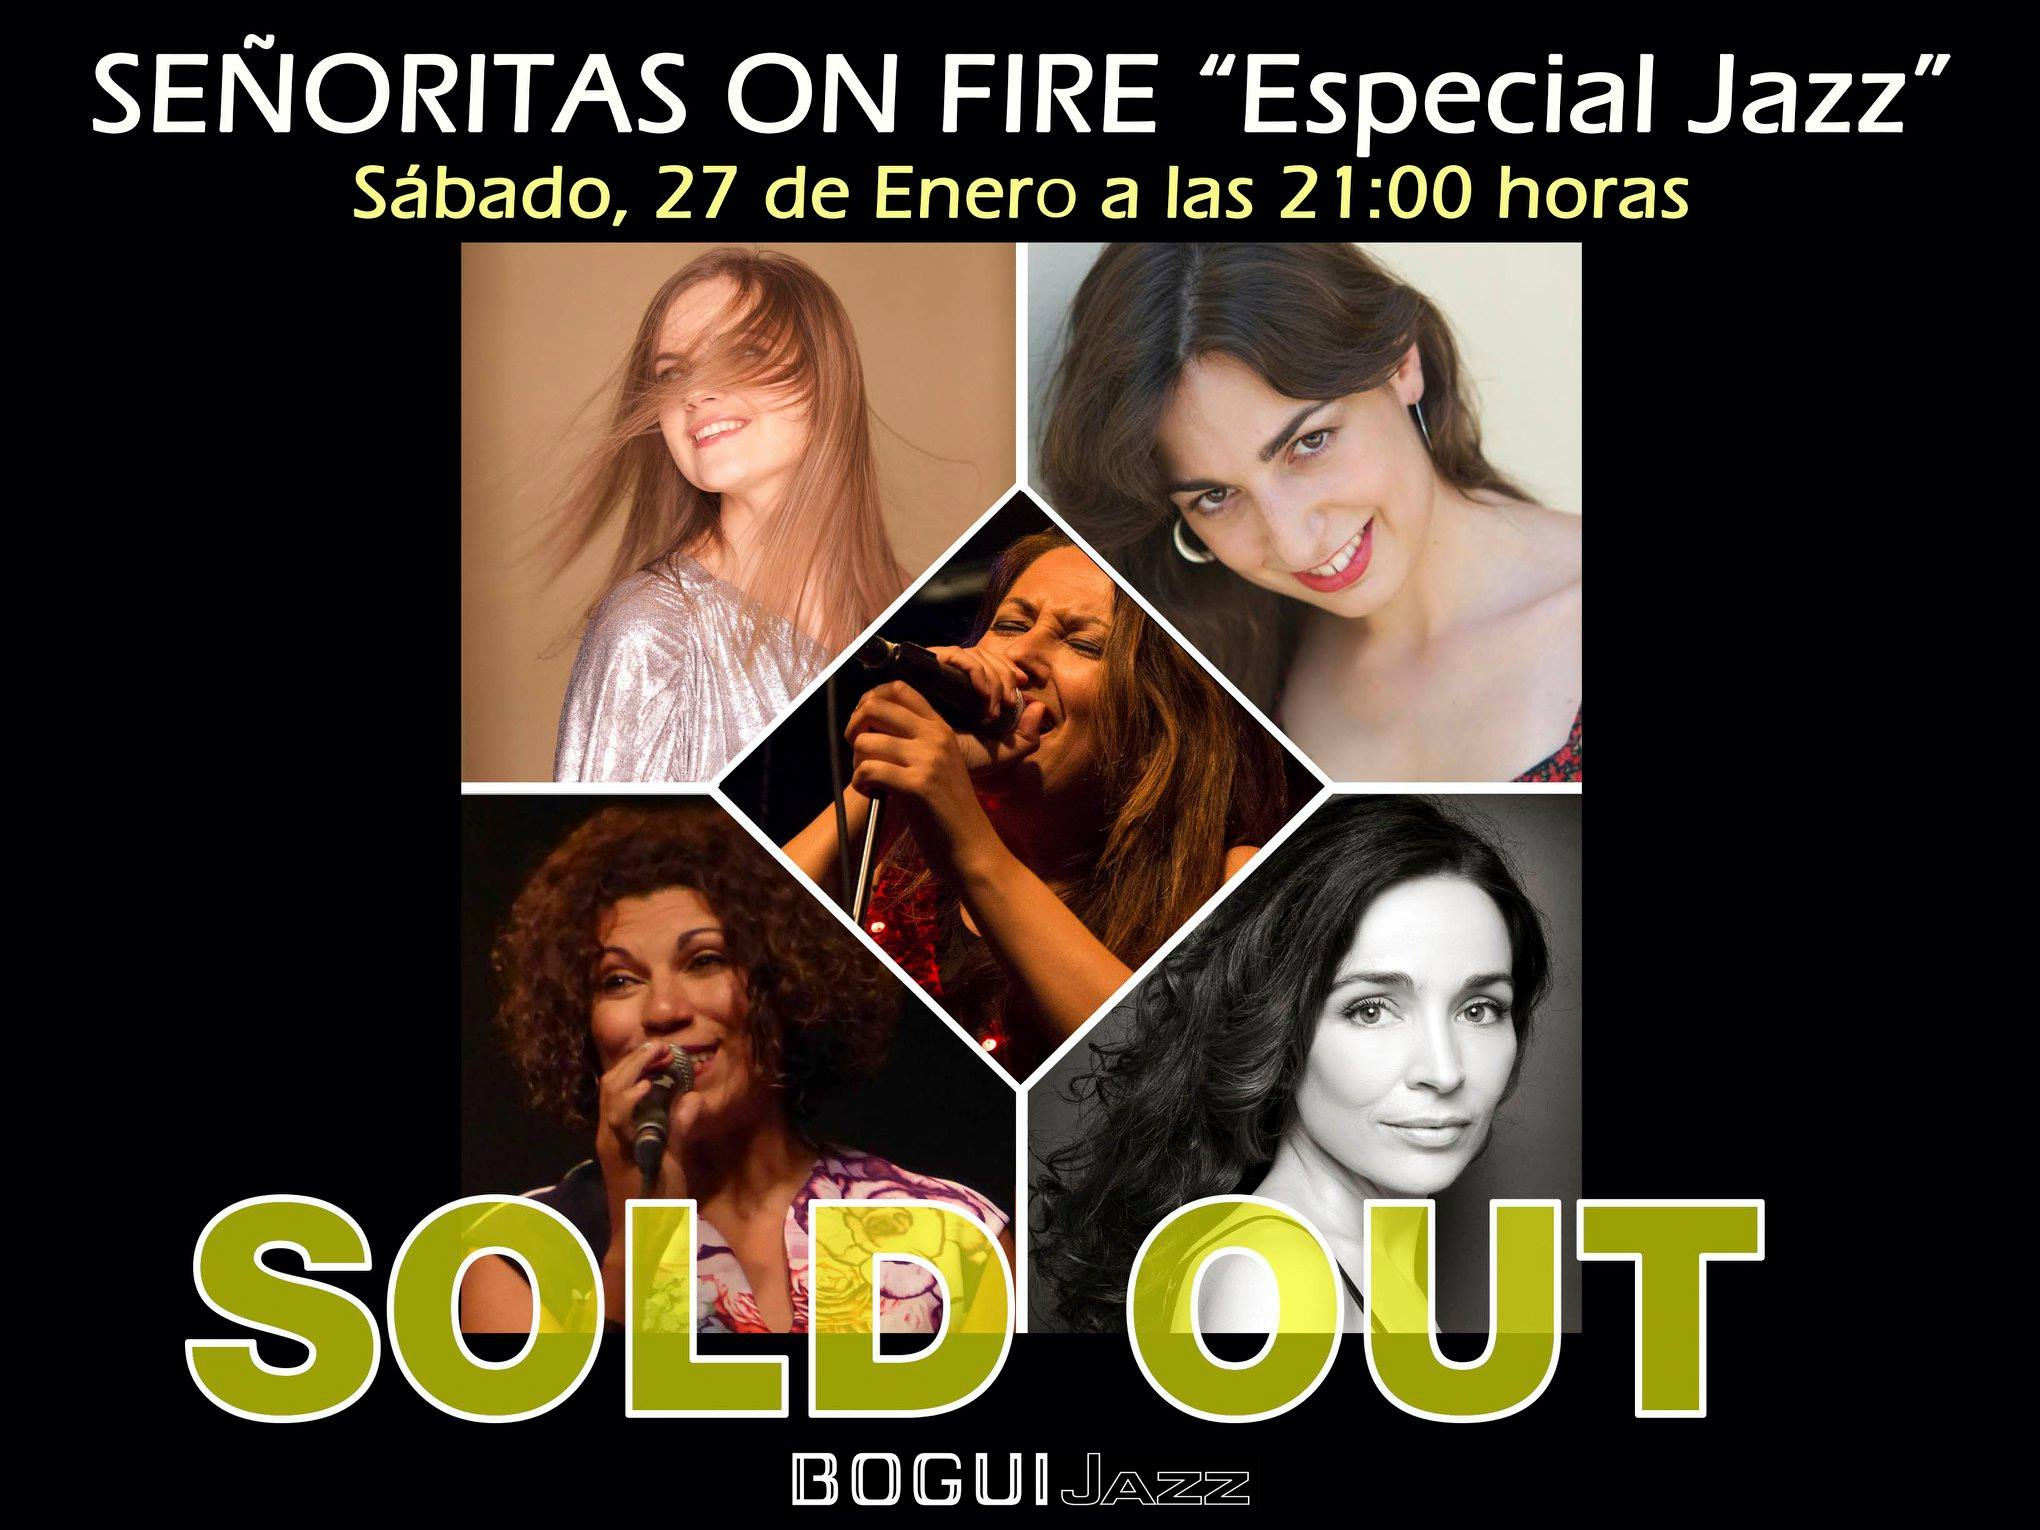 Especial Jazz Sold Out.jpg